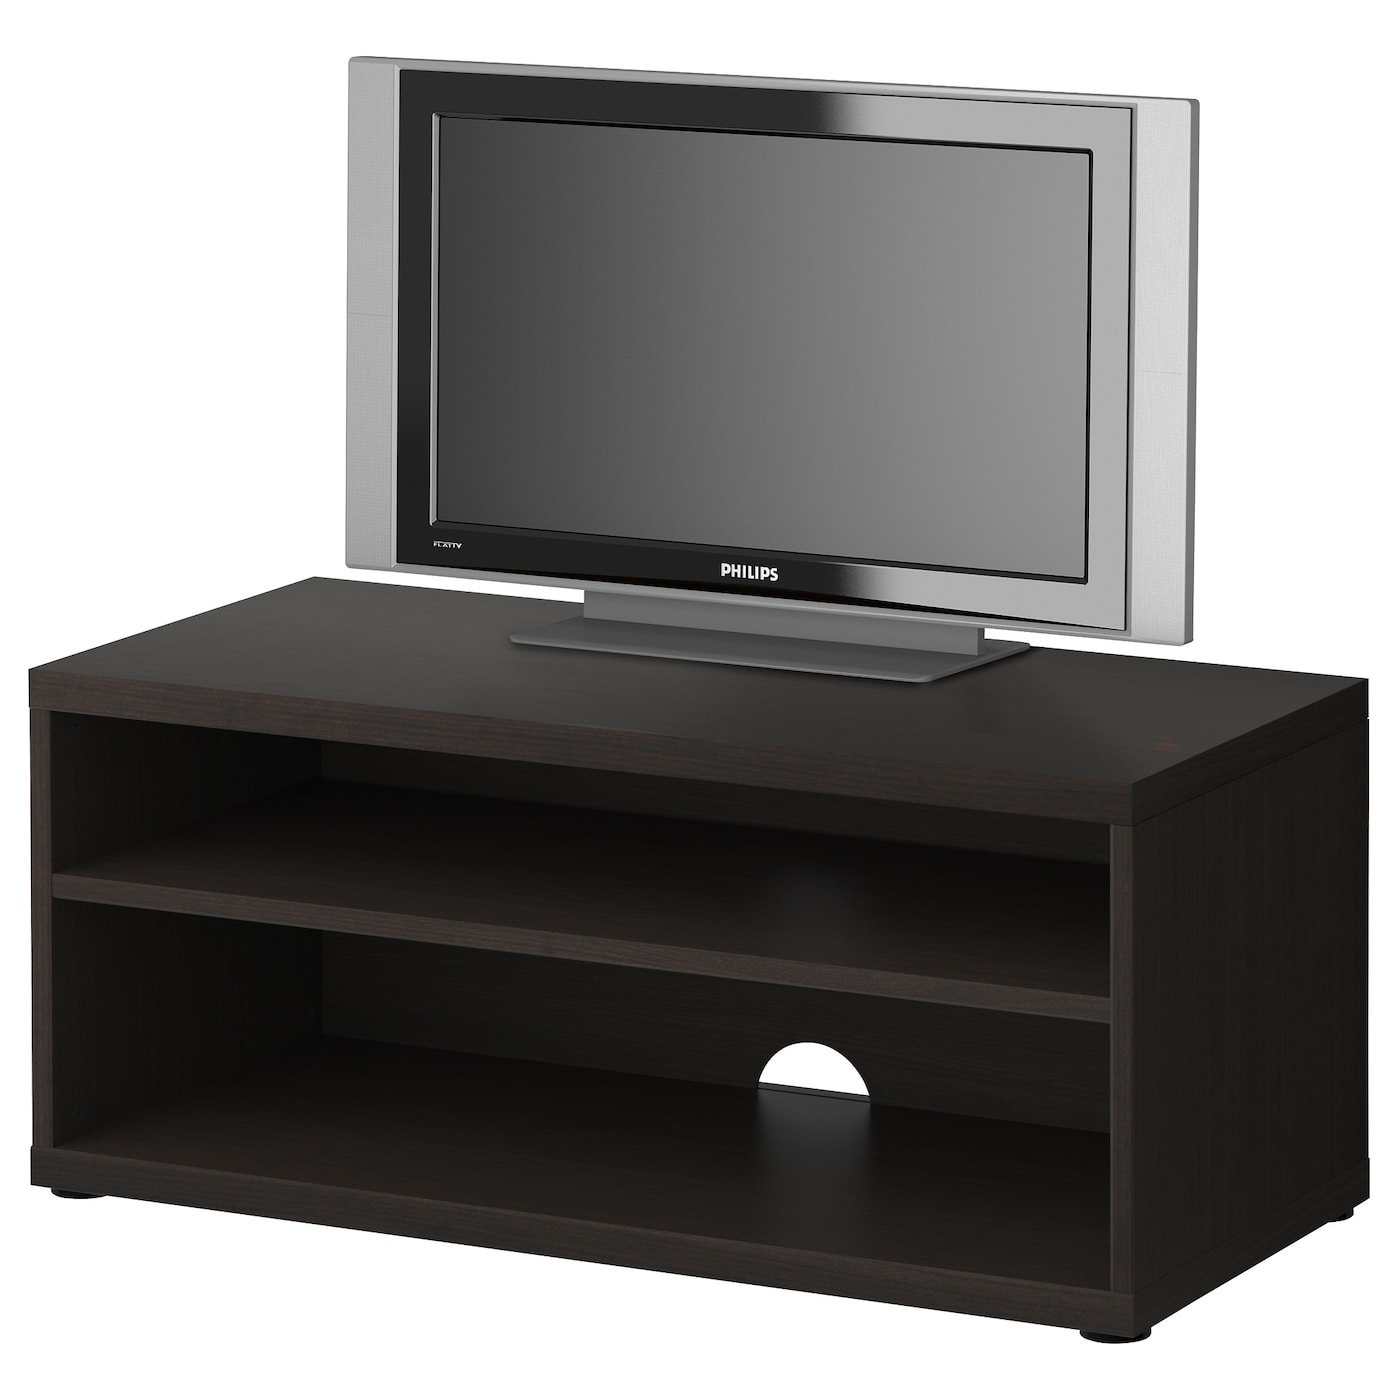 room contemporary oval bedroom samsung tv cabinet unit cool silver drawers stand gloss wood screens brown full stands white cheap with thin pueblo flat walnut living size wall black media bench shelving cabinets and of m for entertainment corner storage